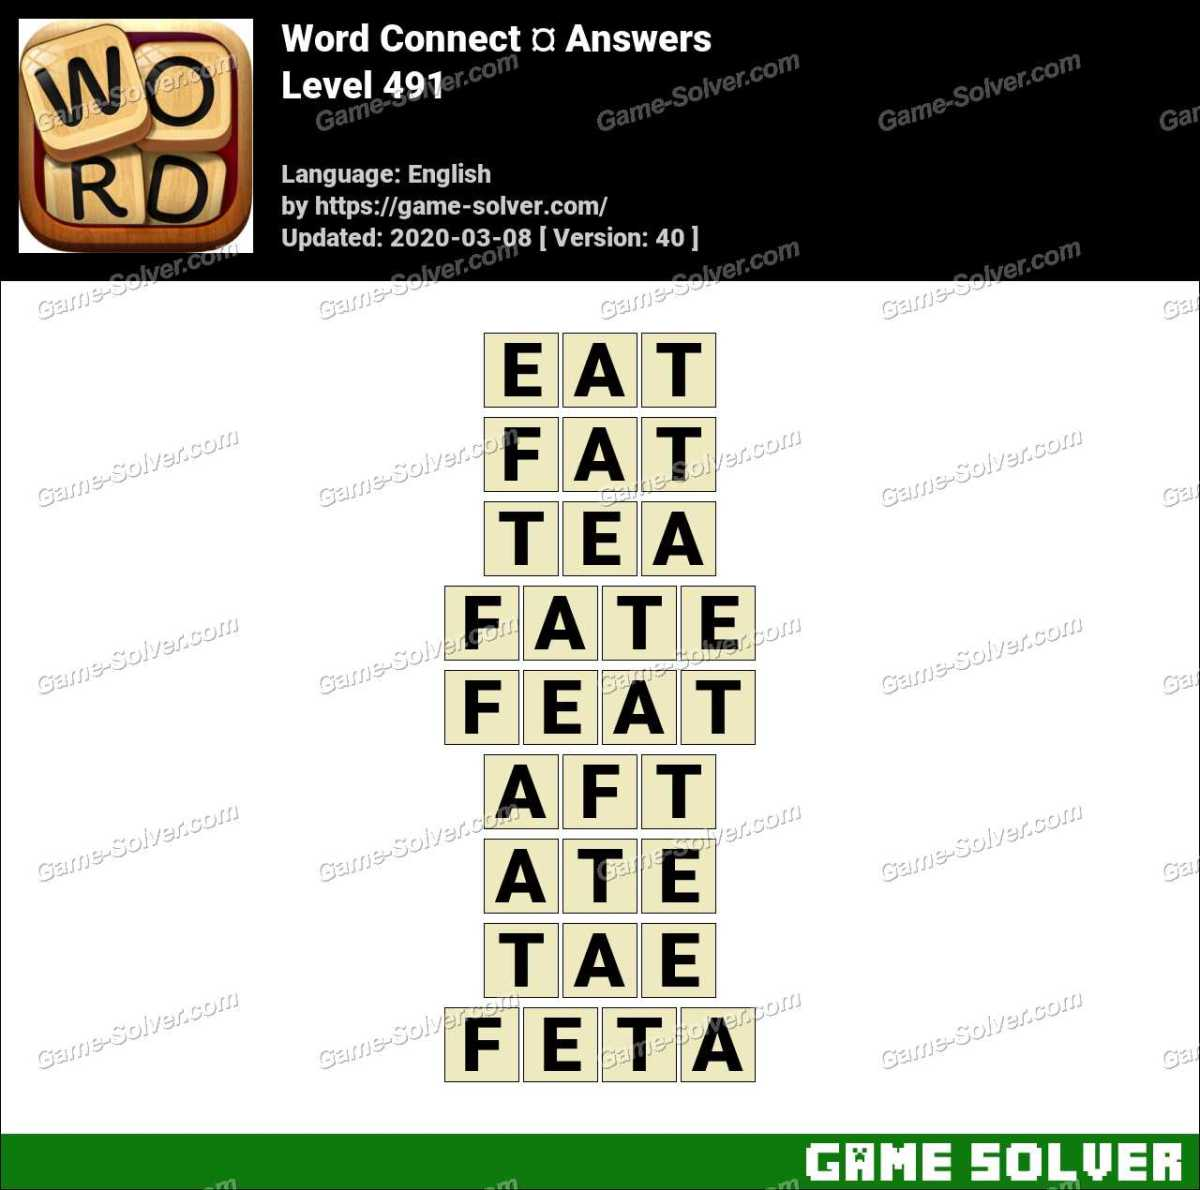 Word Connect Level 491 Answers